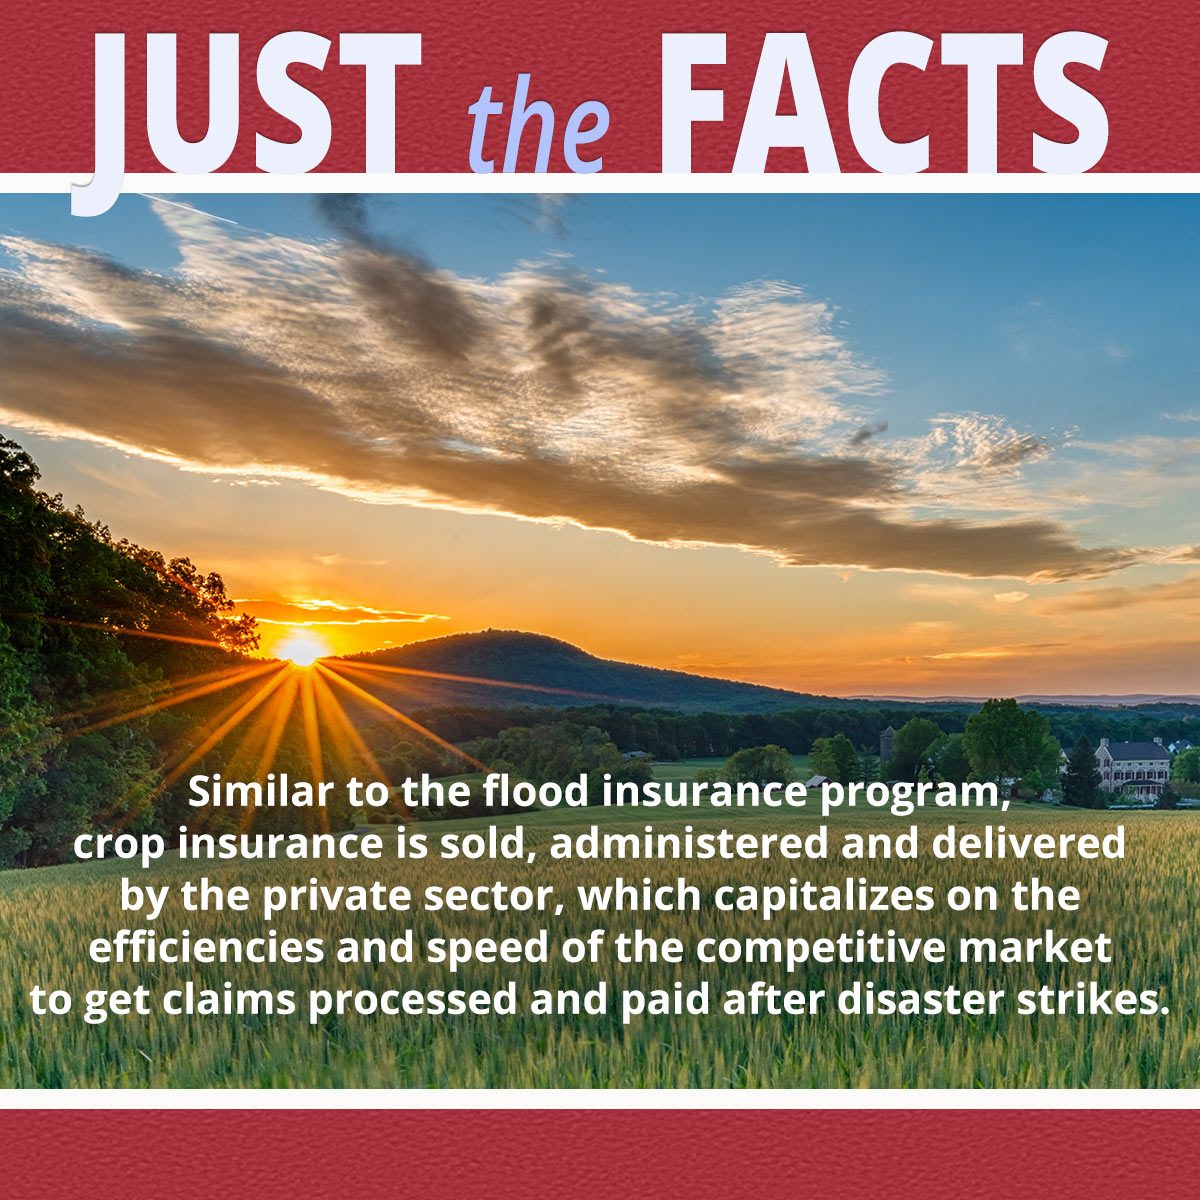 Boman & Associates | Crop Insurance | Crop insurance is adminstered by the Private Sector